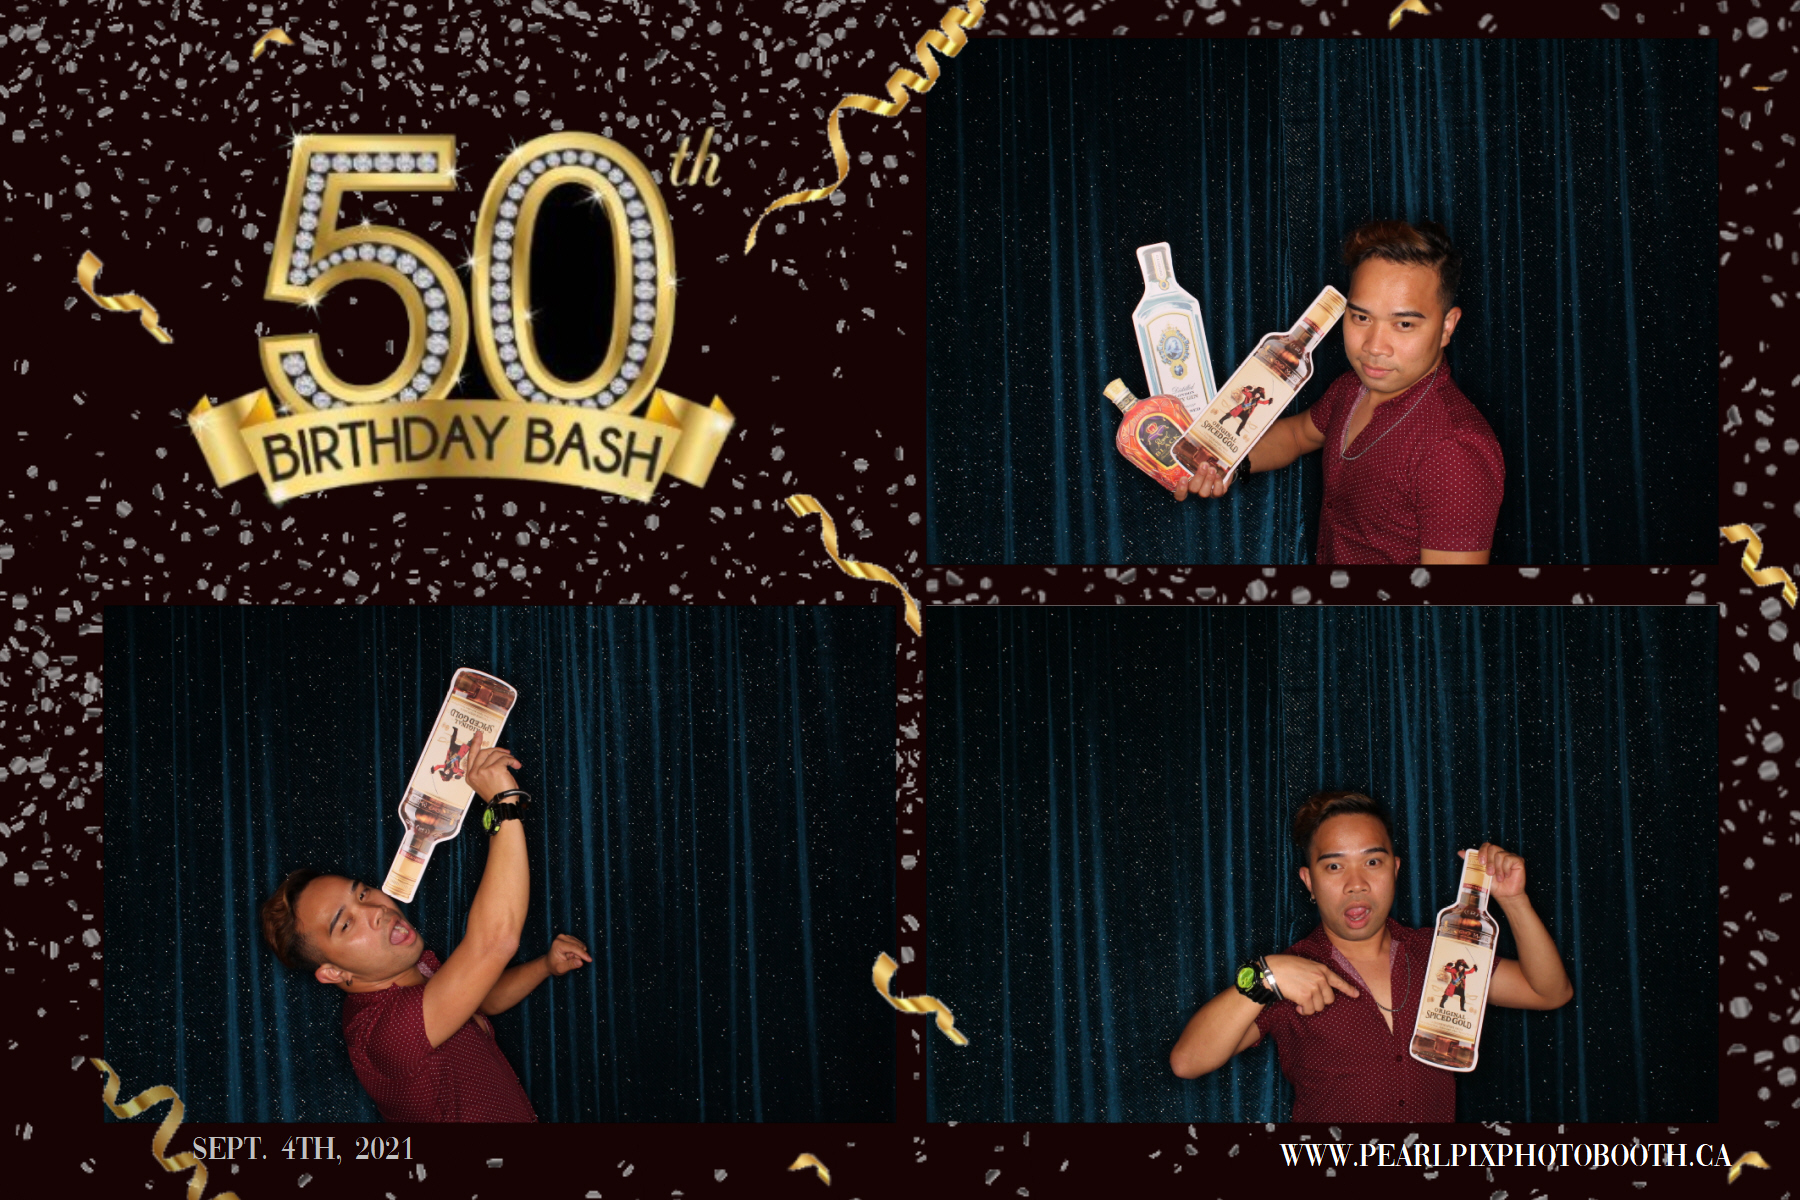 Peter_s 50th Bday_41